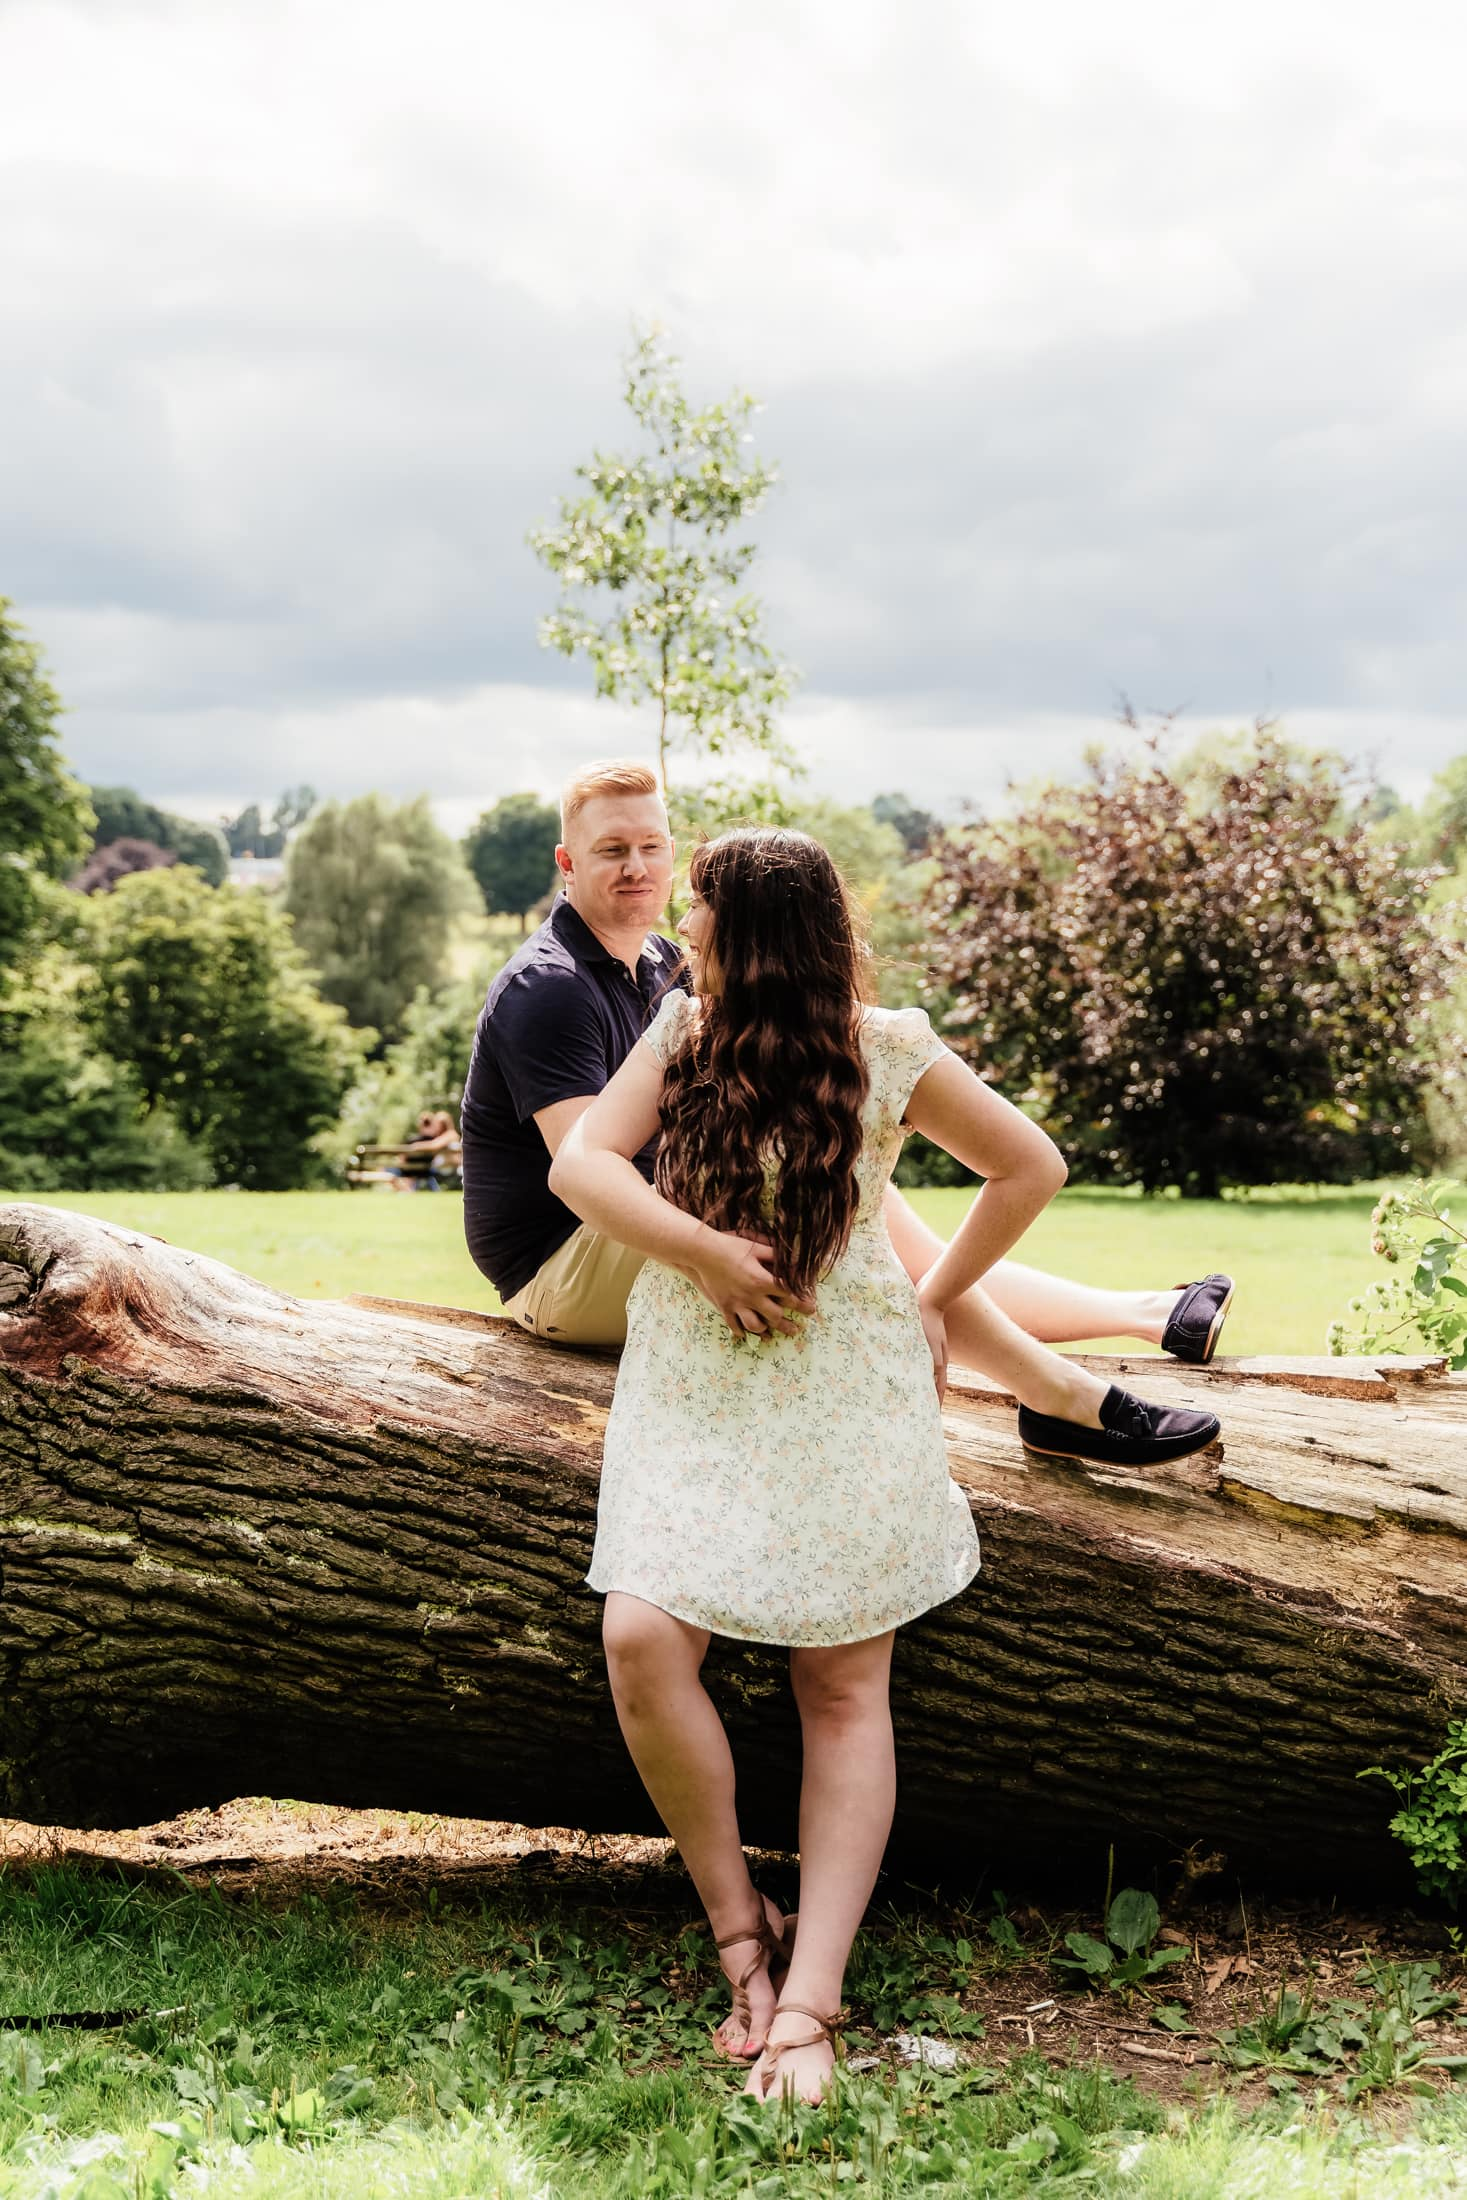 Carlie & Ben enjoying their engagement session - Engagement photography at mote park in maidstone, Kent